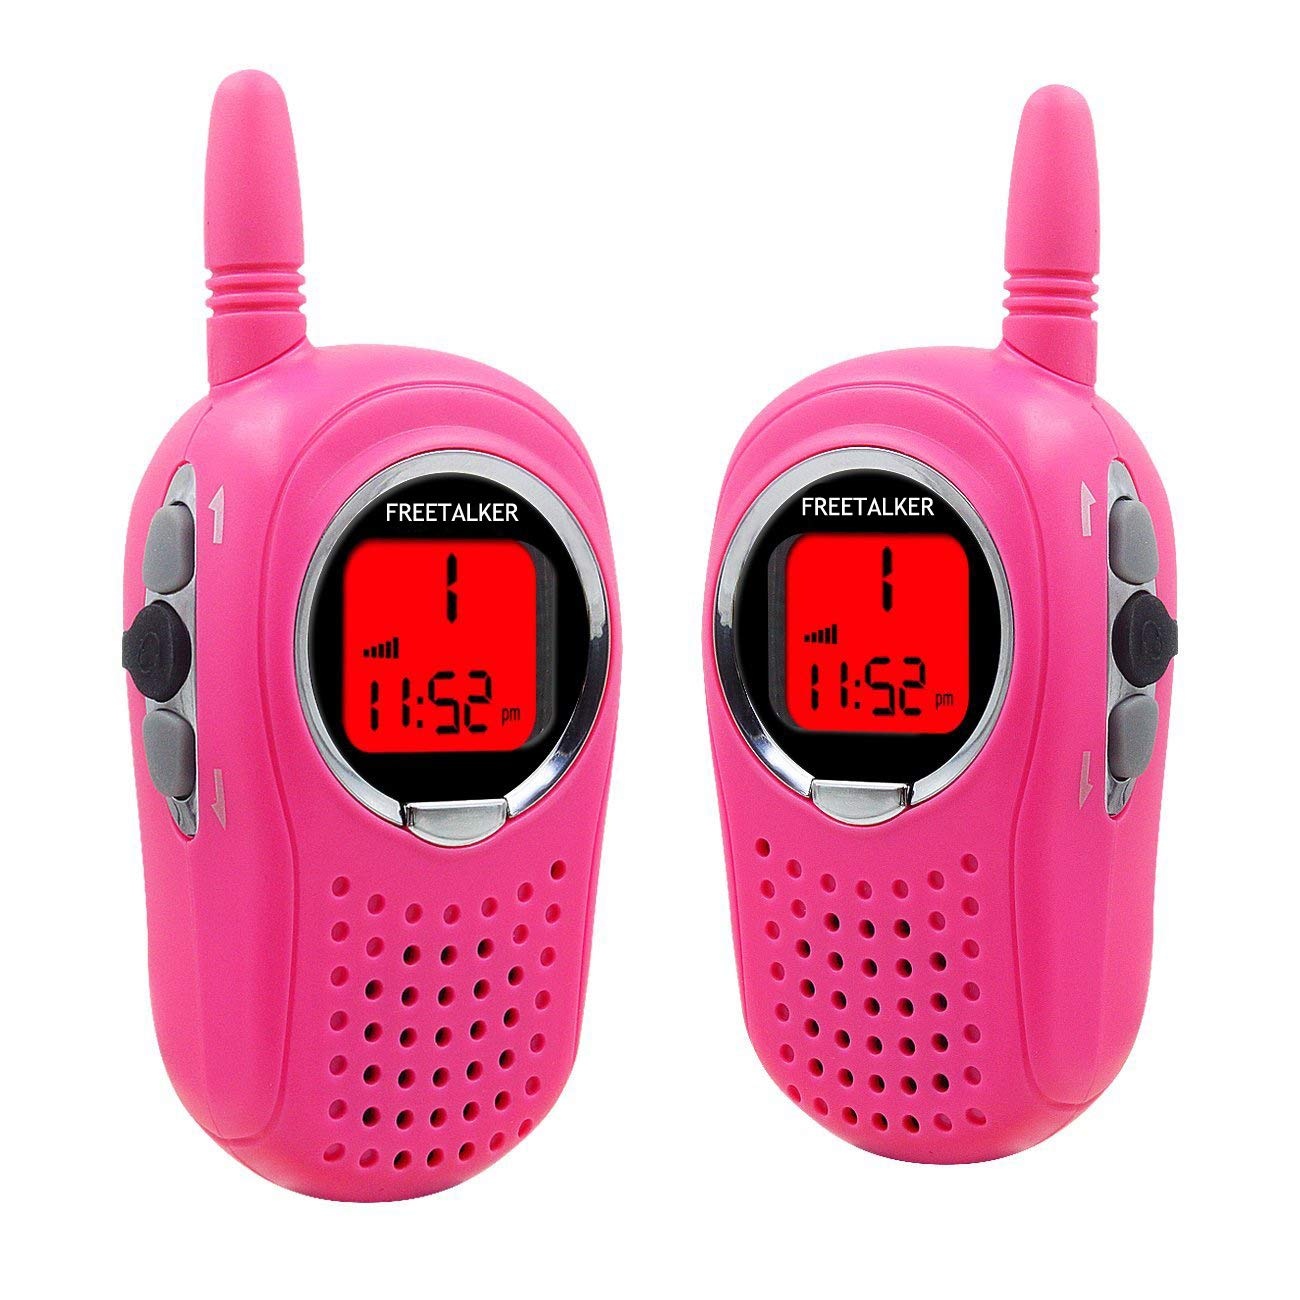 Banbu Toys for 3-12 Year Old Boys, Teen Girl Gifts, Walkie Talkies for Kids Teen Boy Gifts Birthday,2Packs,Pink